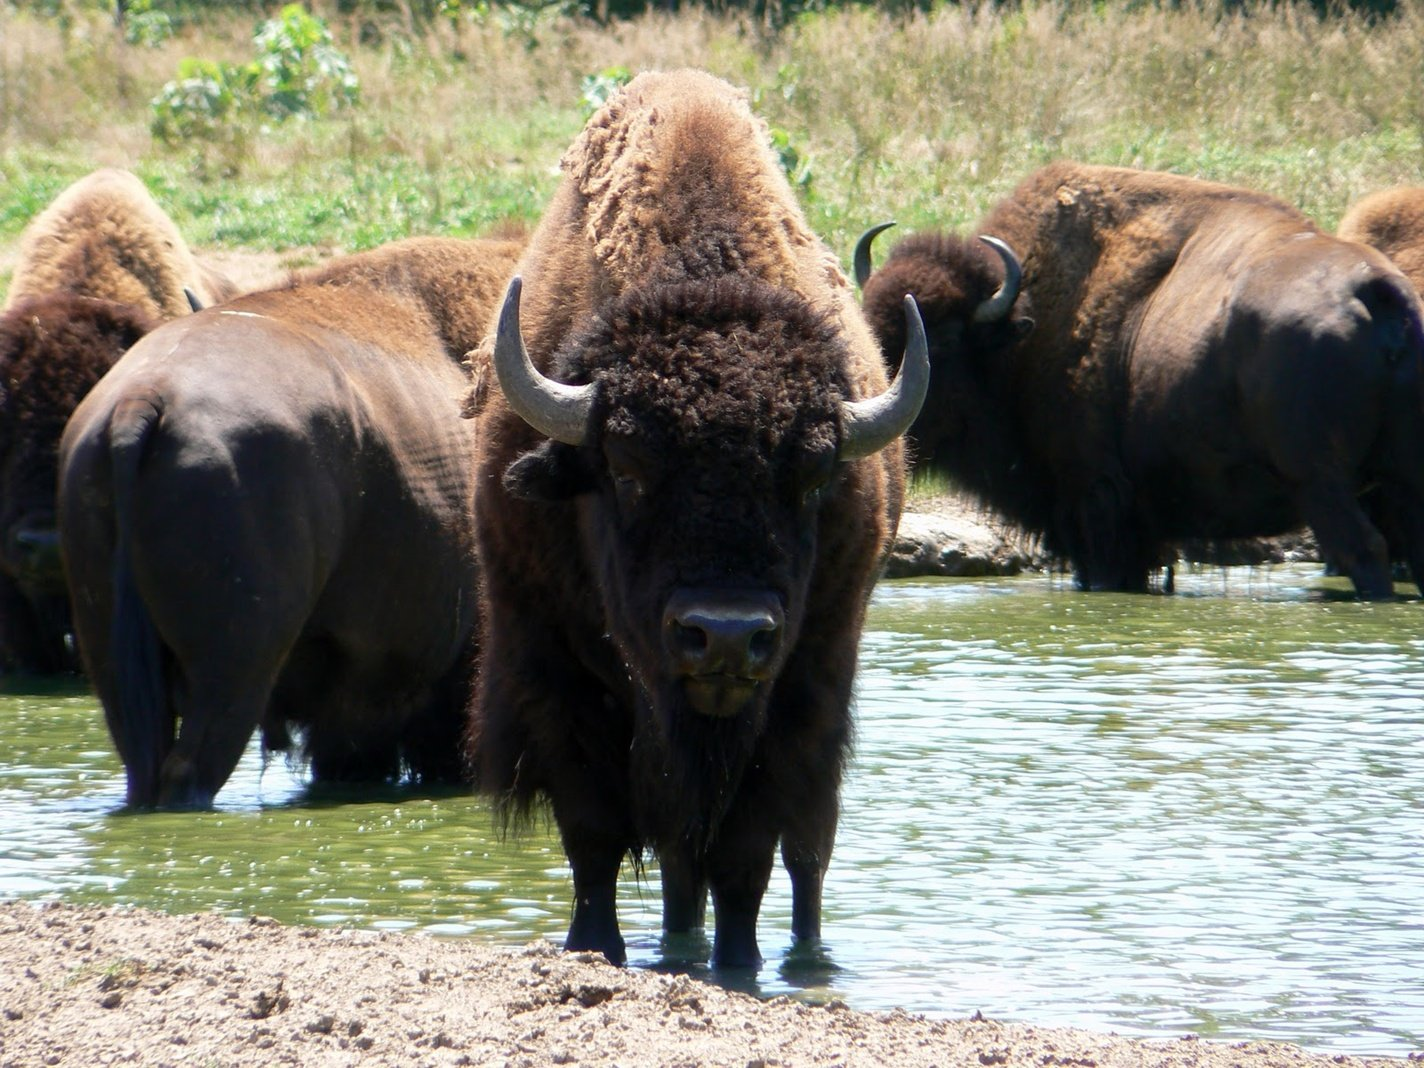 Bison Buffalo Free Stock Photo - Public Domain Pictures